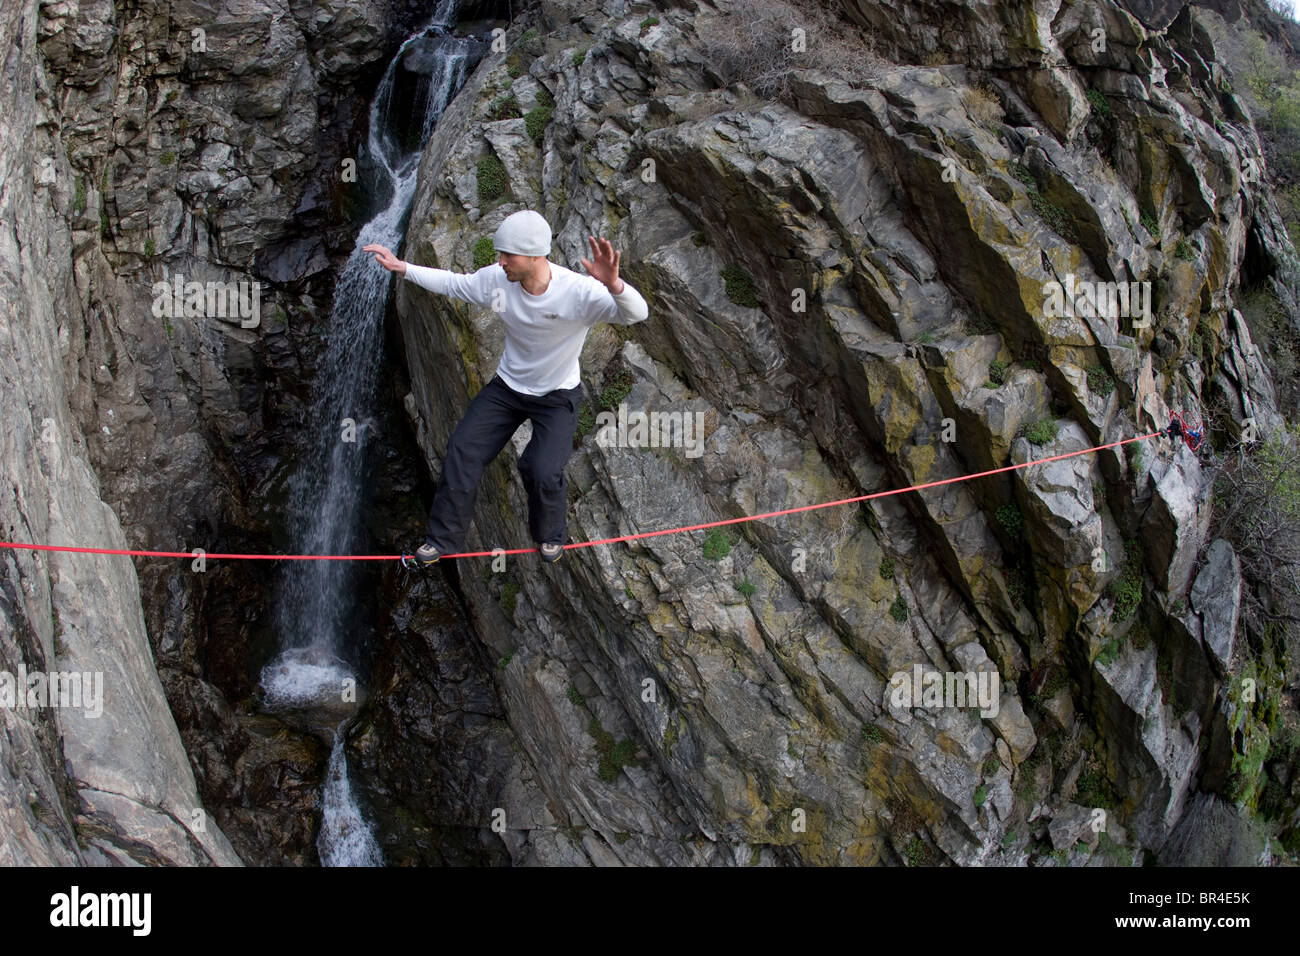 man slacklining over a waterfall and rock gorge, Wasatch Mountain, Utah - Stock Image